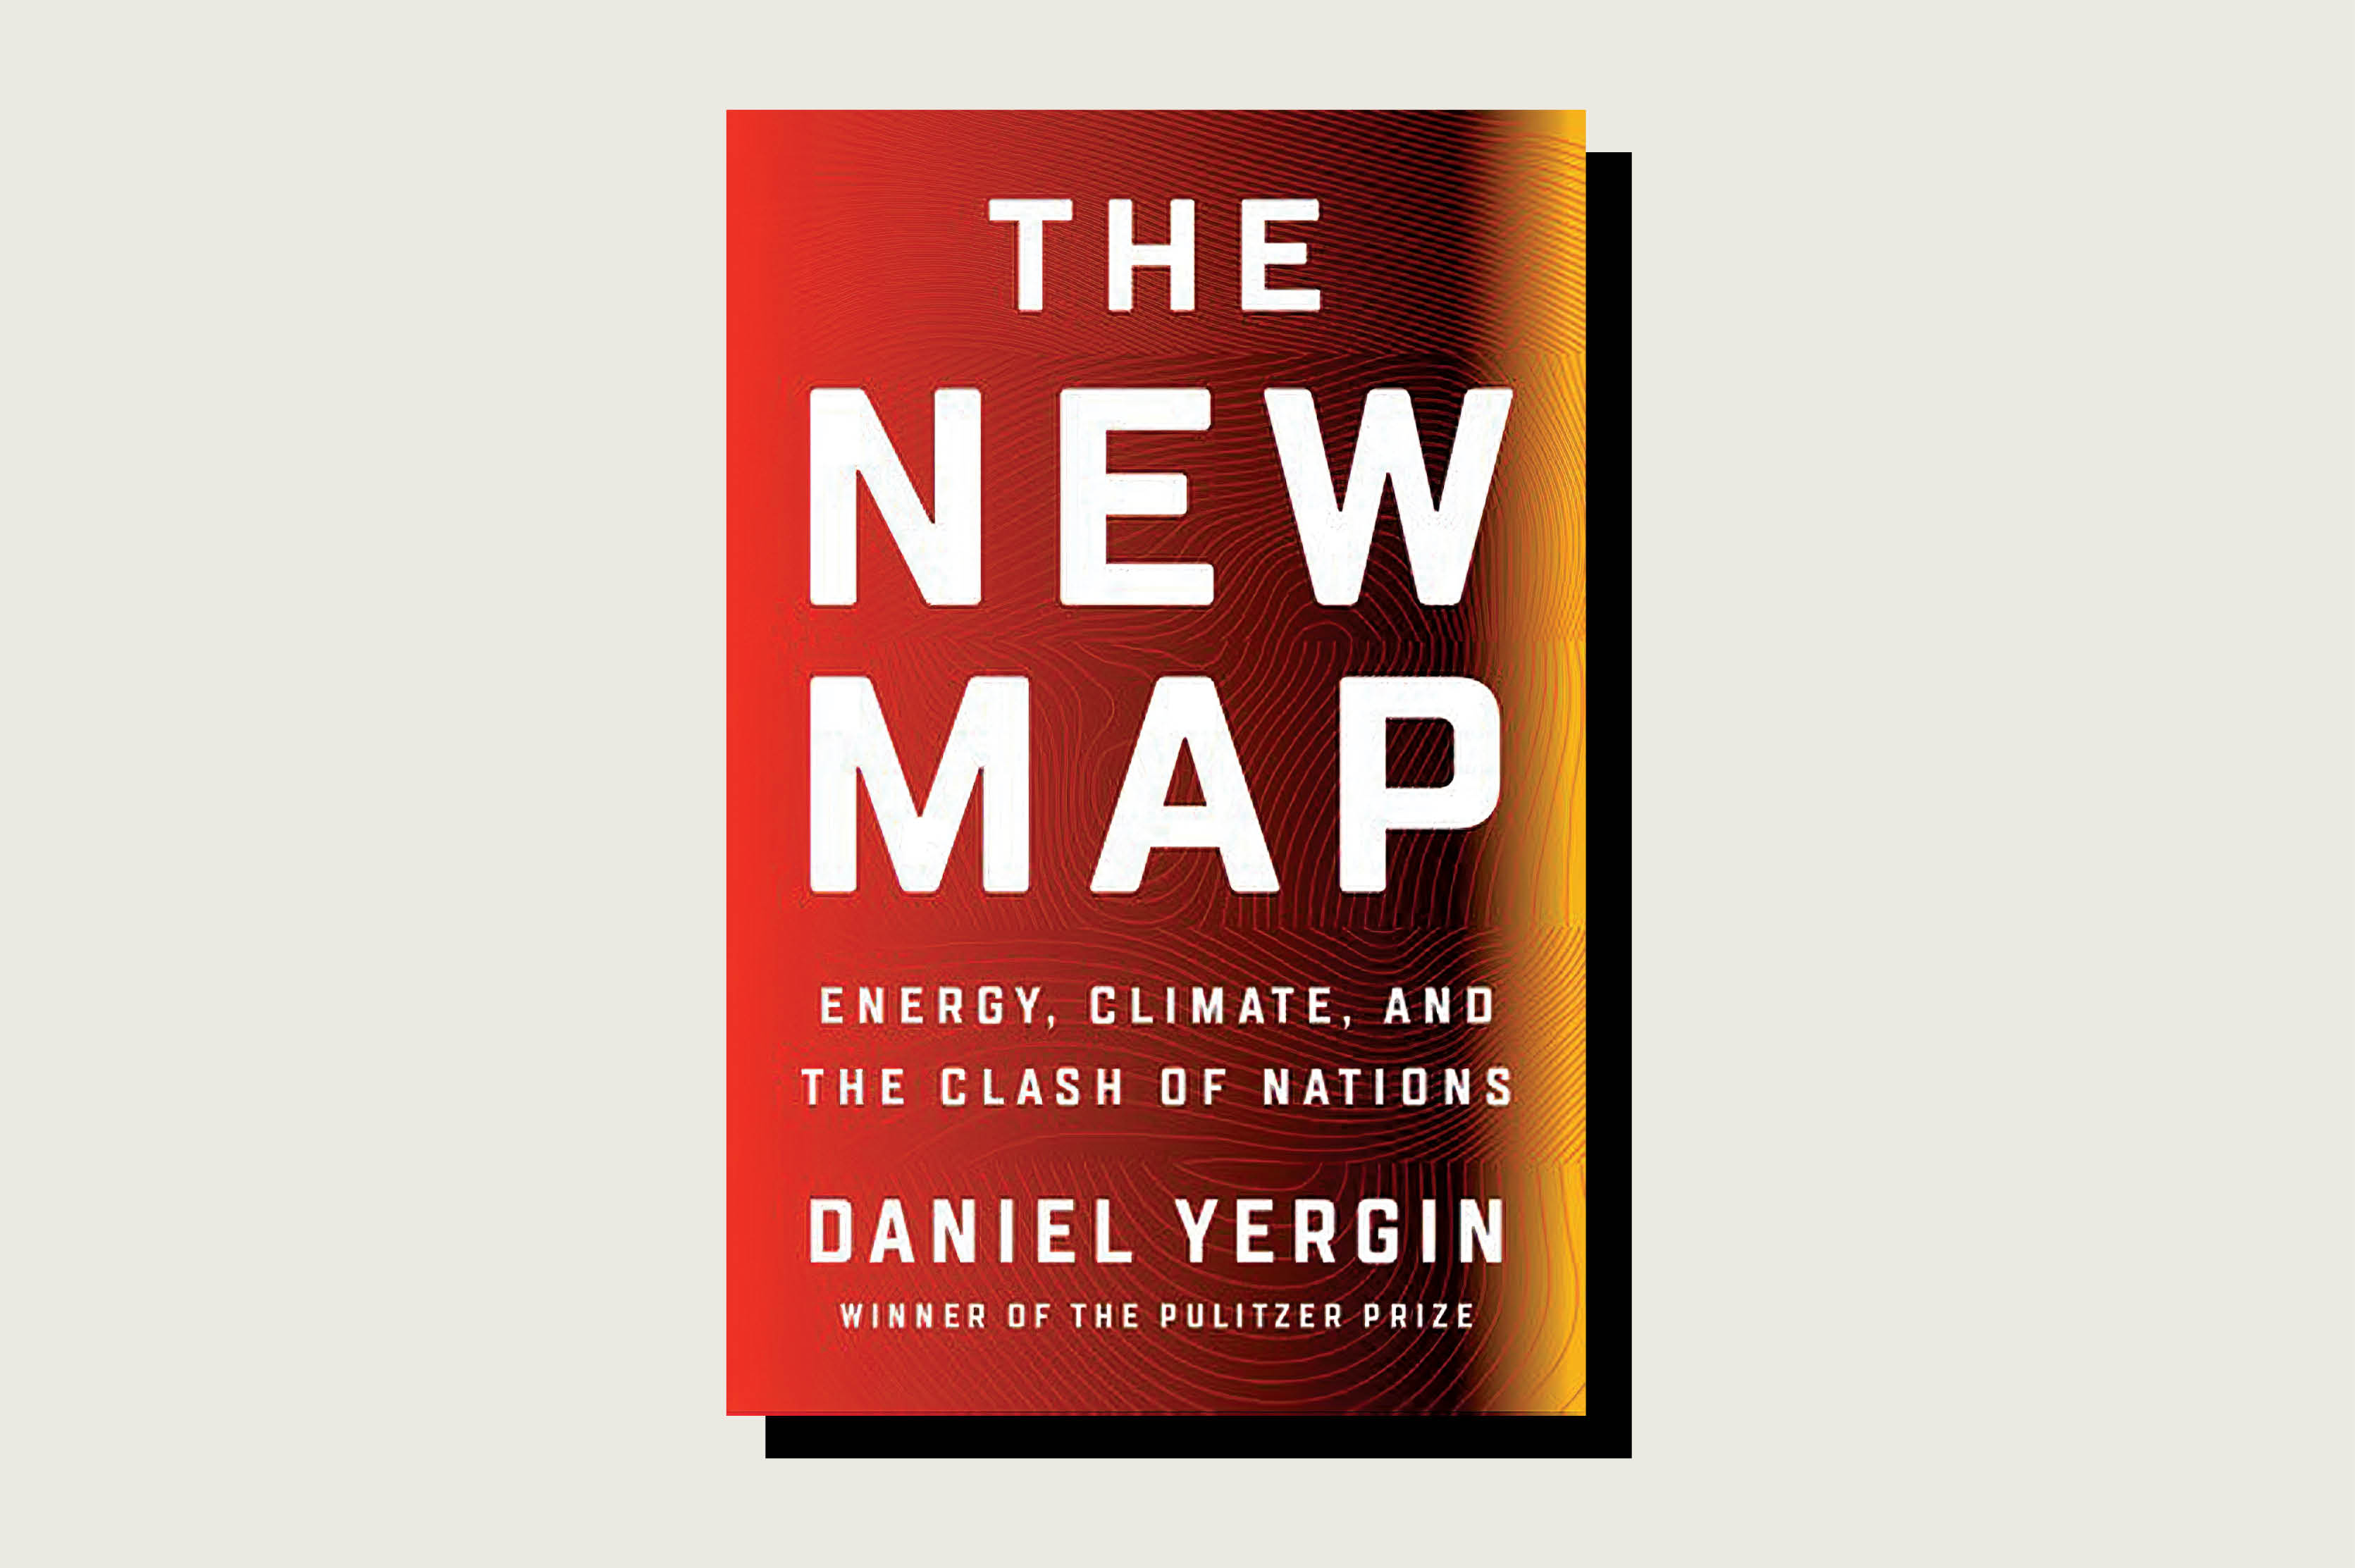 The New Map: Energy, Climate, and the Clash of Nations, Daniel Yergin, Penguin Press, 512 pp., , September 2020